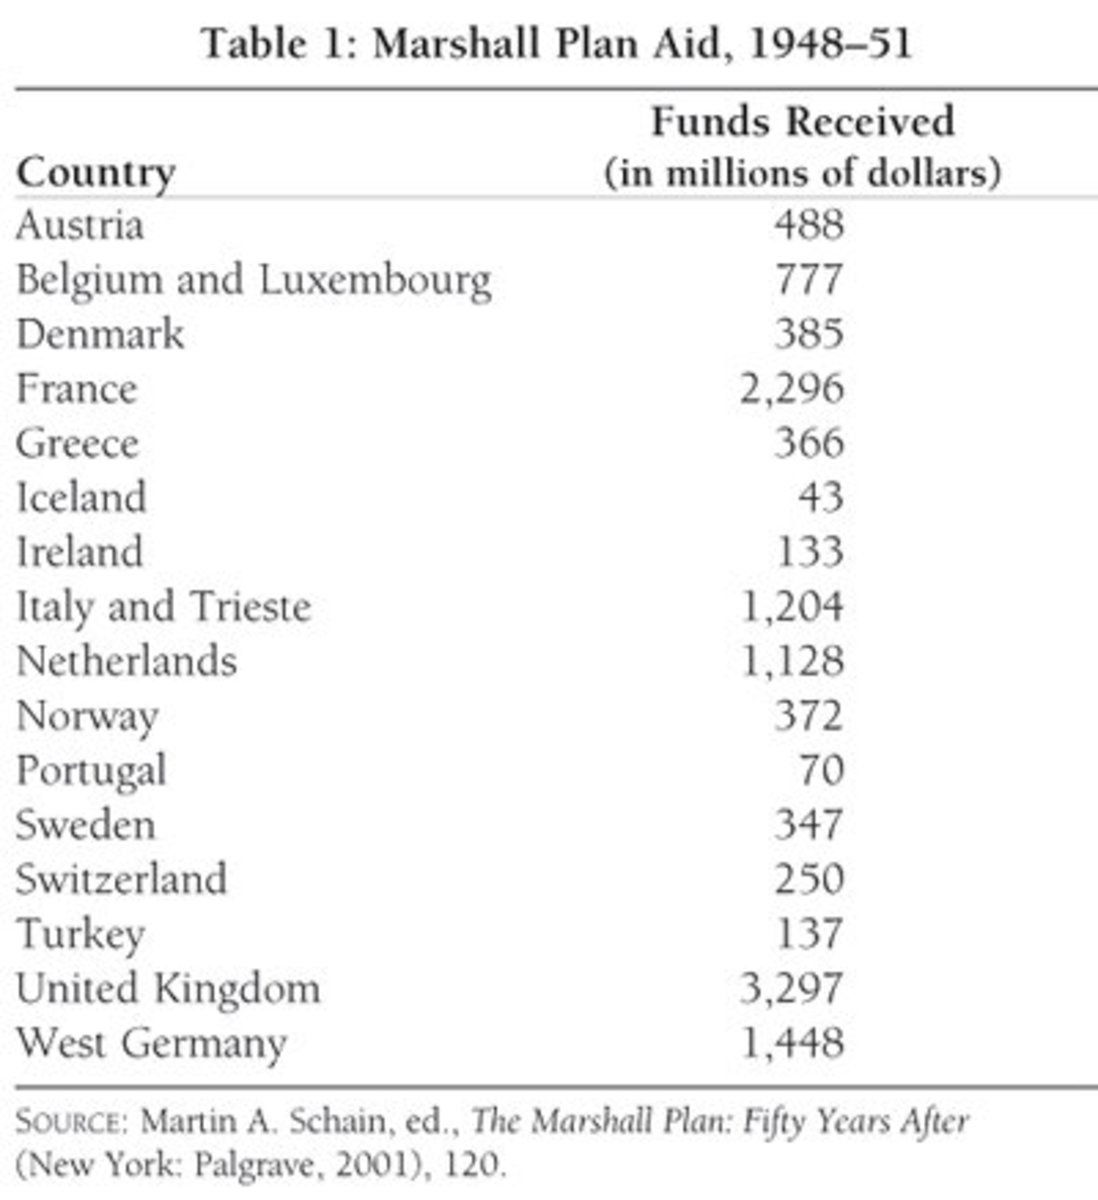 A table showing Marshall aid to European countries.